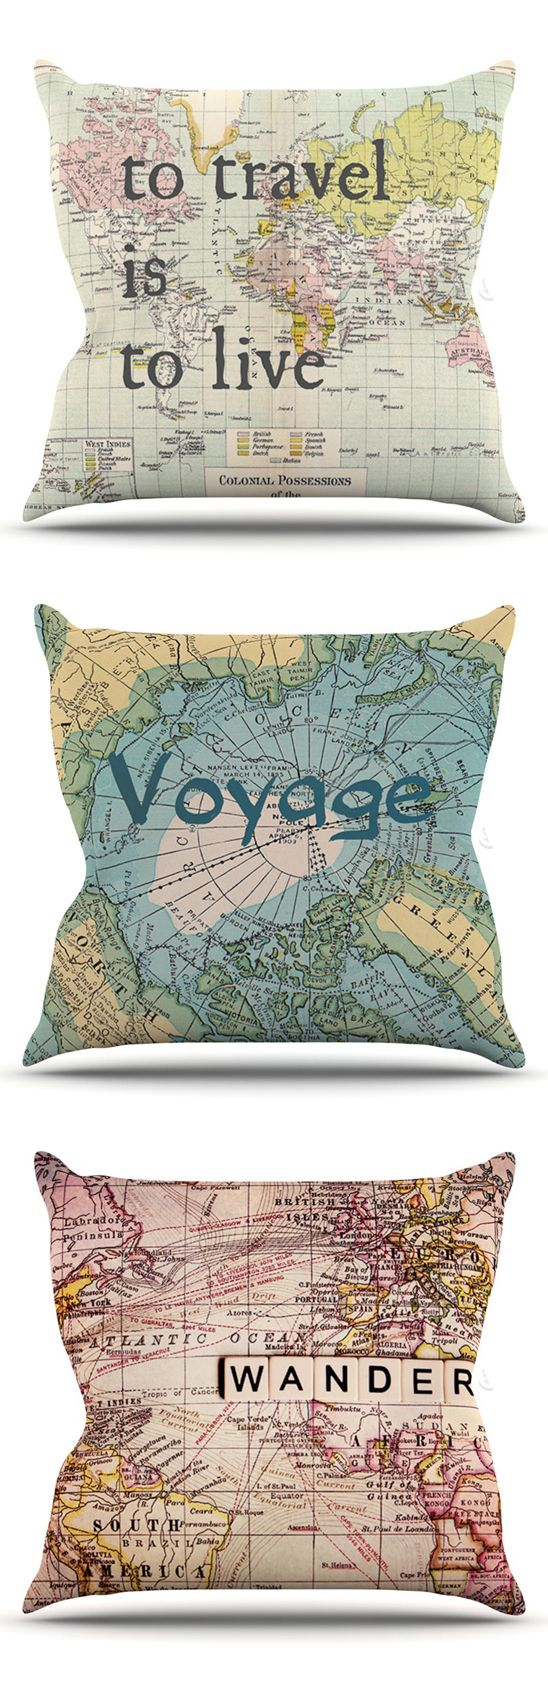 To travel is to live   Voyage   Wander - pillows